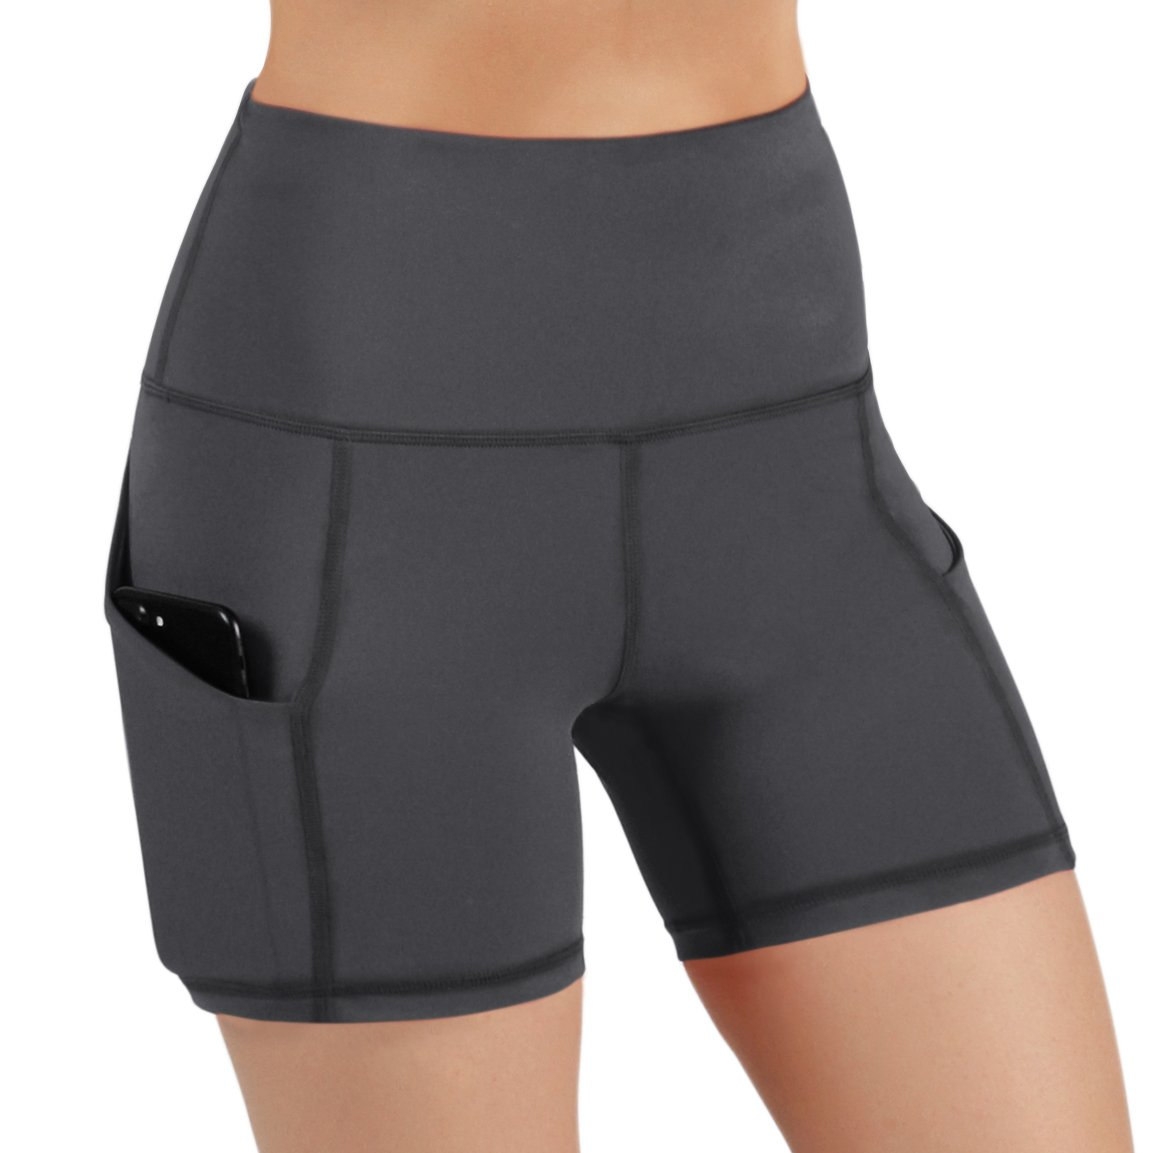 ODODOS High Waist Out Pocket Yoga Short Tummy Control Workout Running Athletic Non See-Through Yoga Shorts,Gray,XX-Large by ODODOS